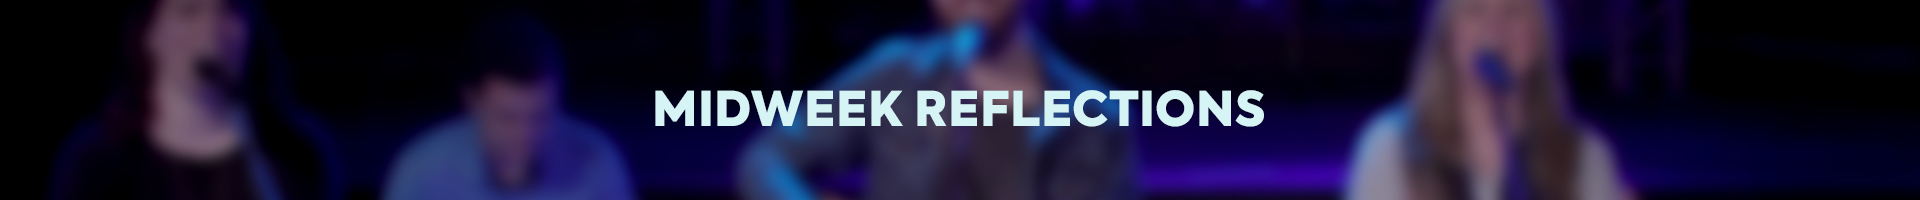 Midweek Reflections Banner b.jpg